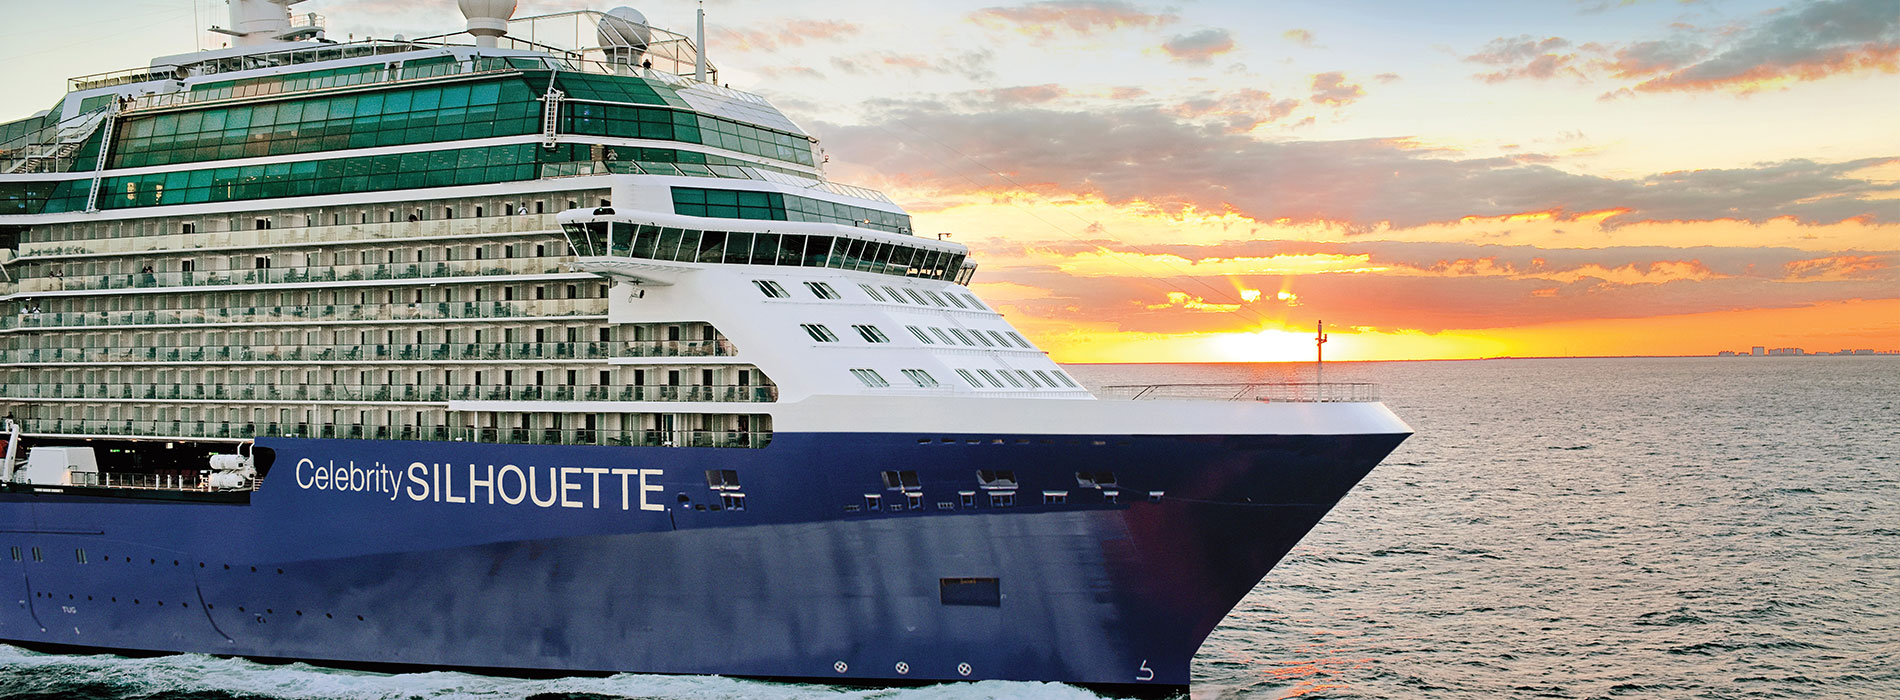 Sailing around the UK on Celebrity Silhouette